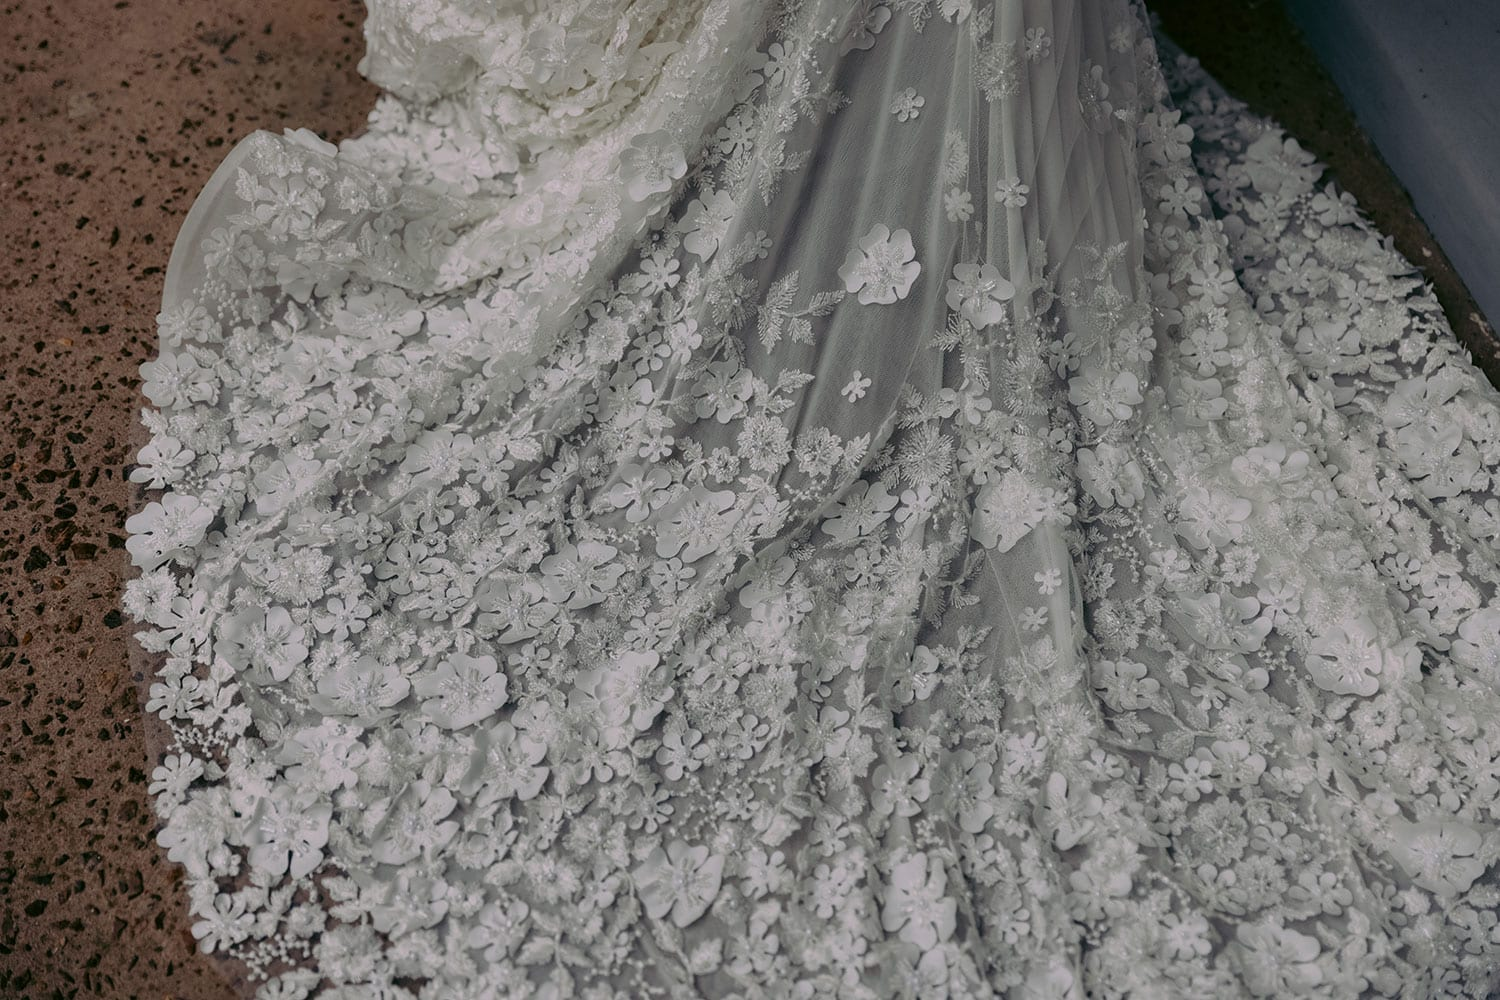 E'more Wedding gown from Vinka Design - This stunning lace wedding gown is hand sewn with a fully beaded 3D flower embroidery. Structured and boned bodice with scoop neckline in the front and low back. Stretch fit skirt flares into full lace train. Full close up detail of hand sewn lace train.